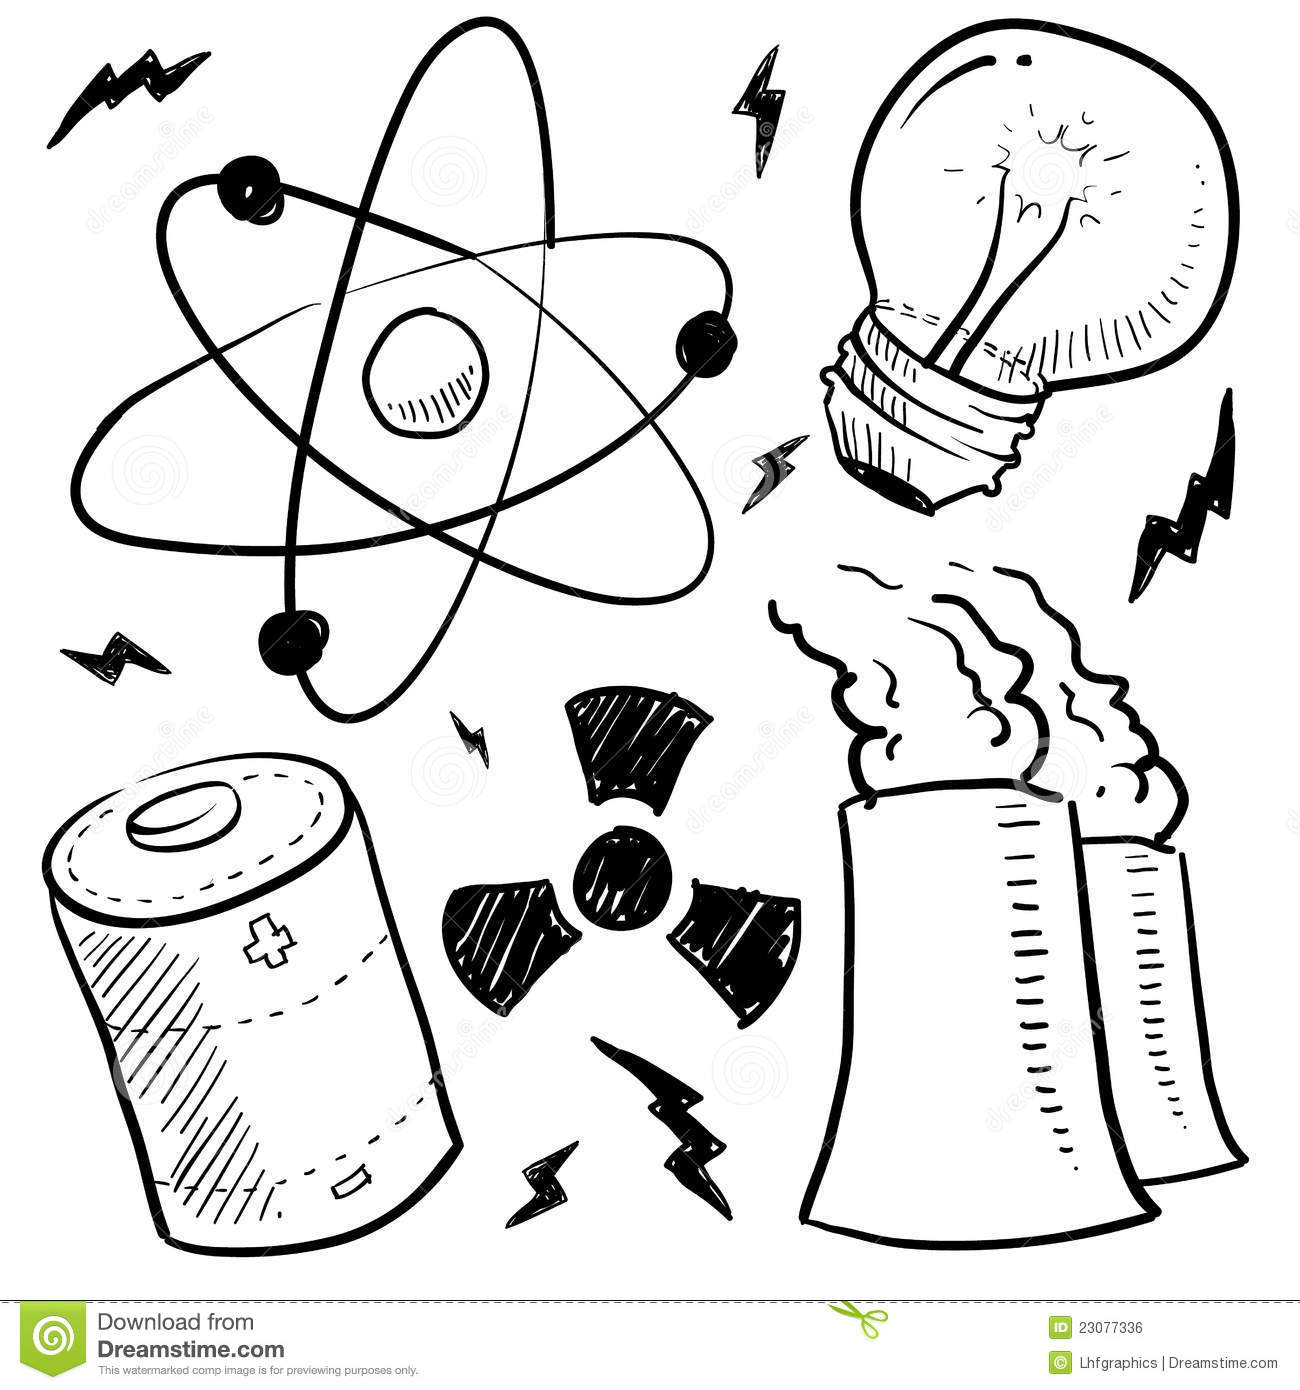 Nuclear Power Objects Sketch Stock Illustration